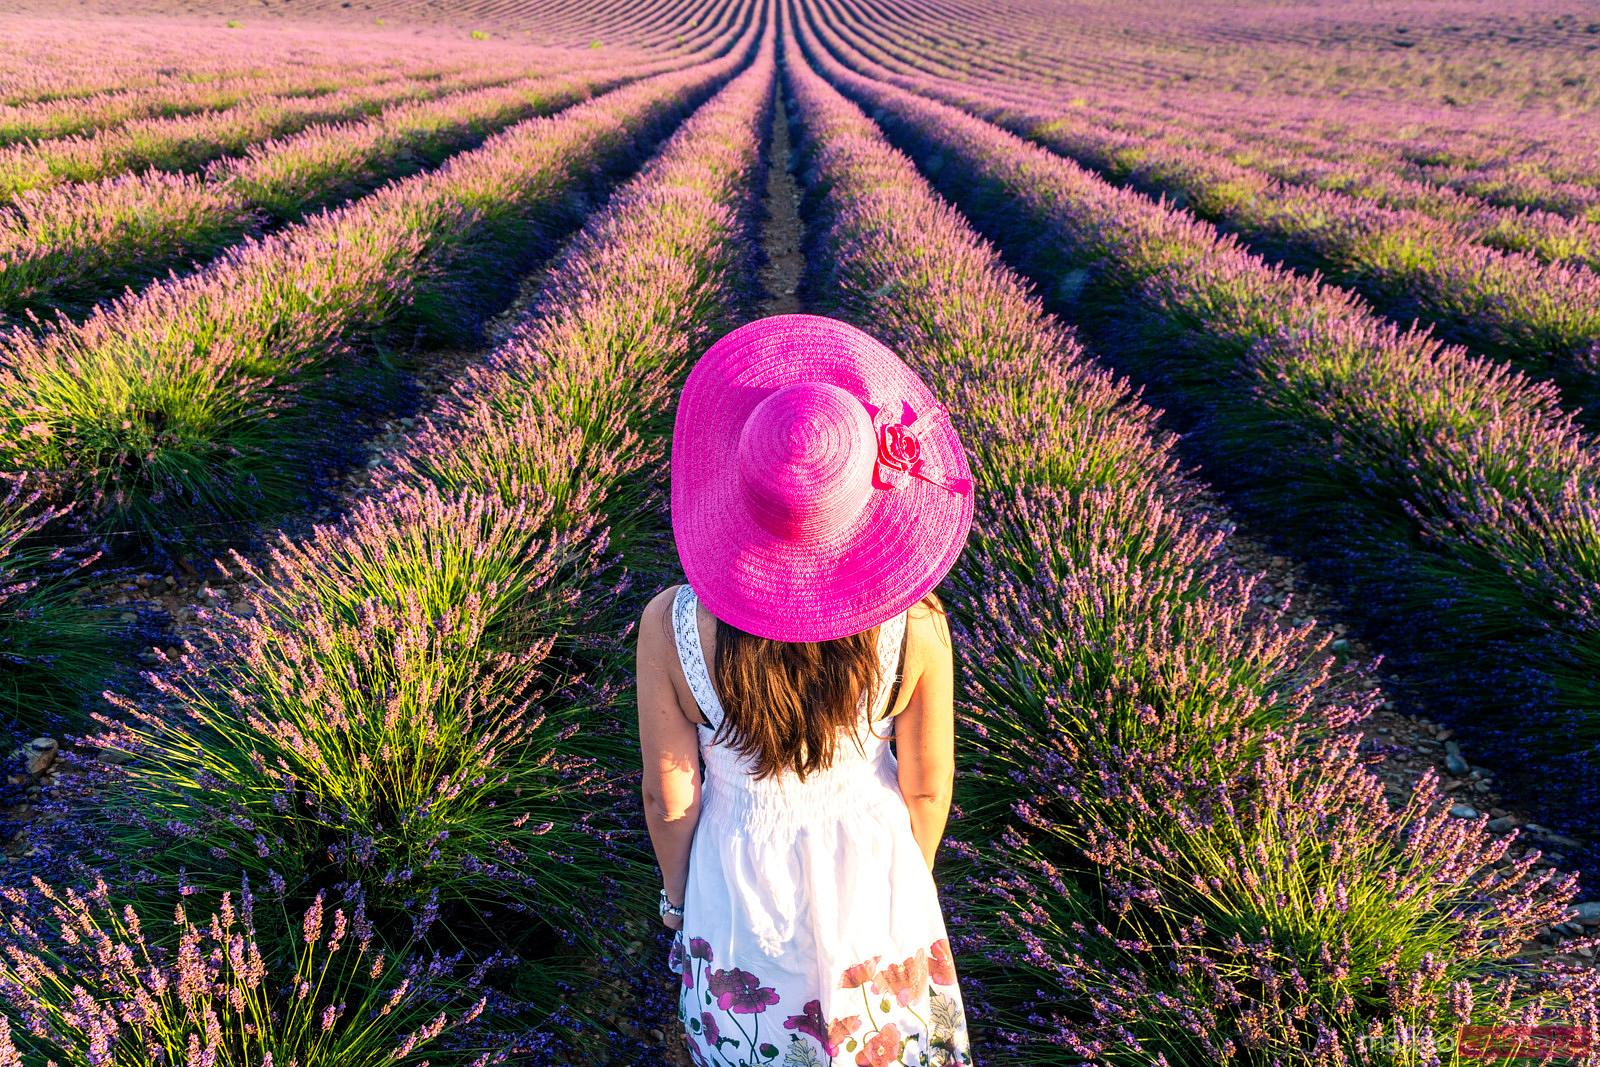 Woman with pink hat in lavender field, Provence, France